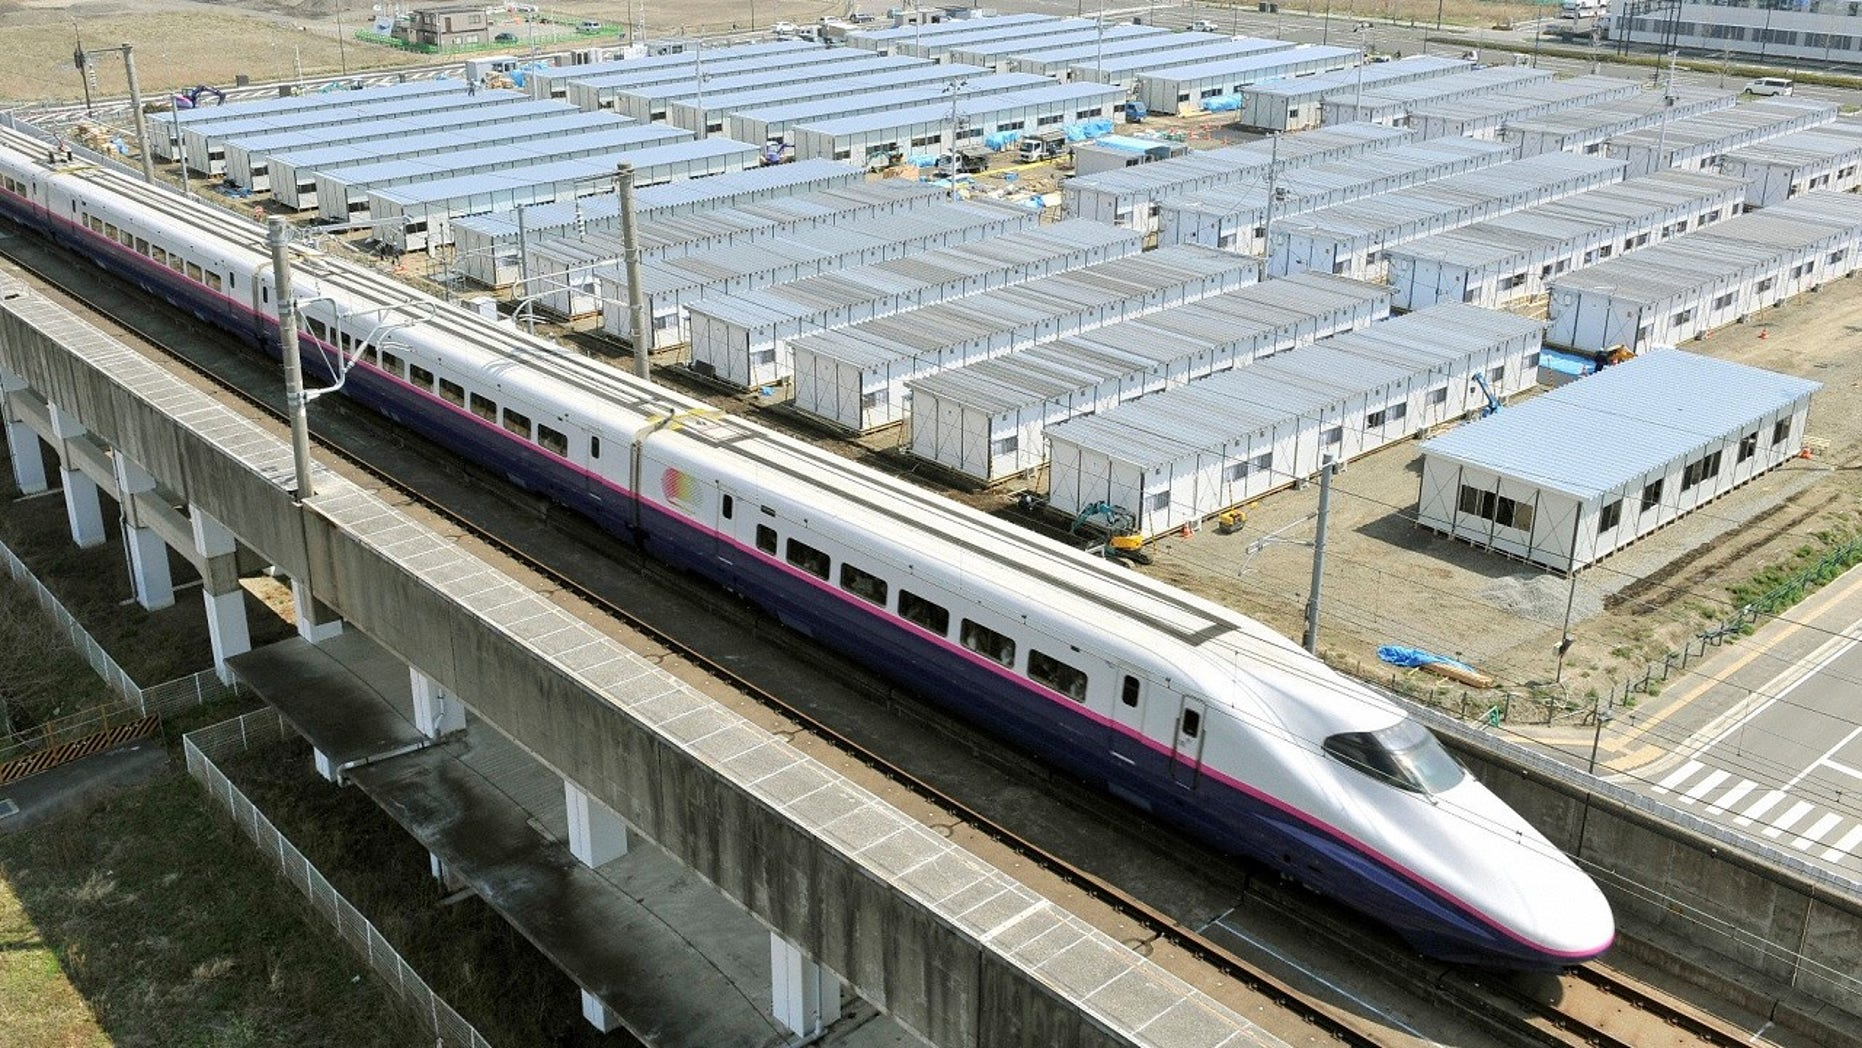 A train line in Japan (not pictured) apologized on Tuesday for departing from the station 20 seconds early.